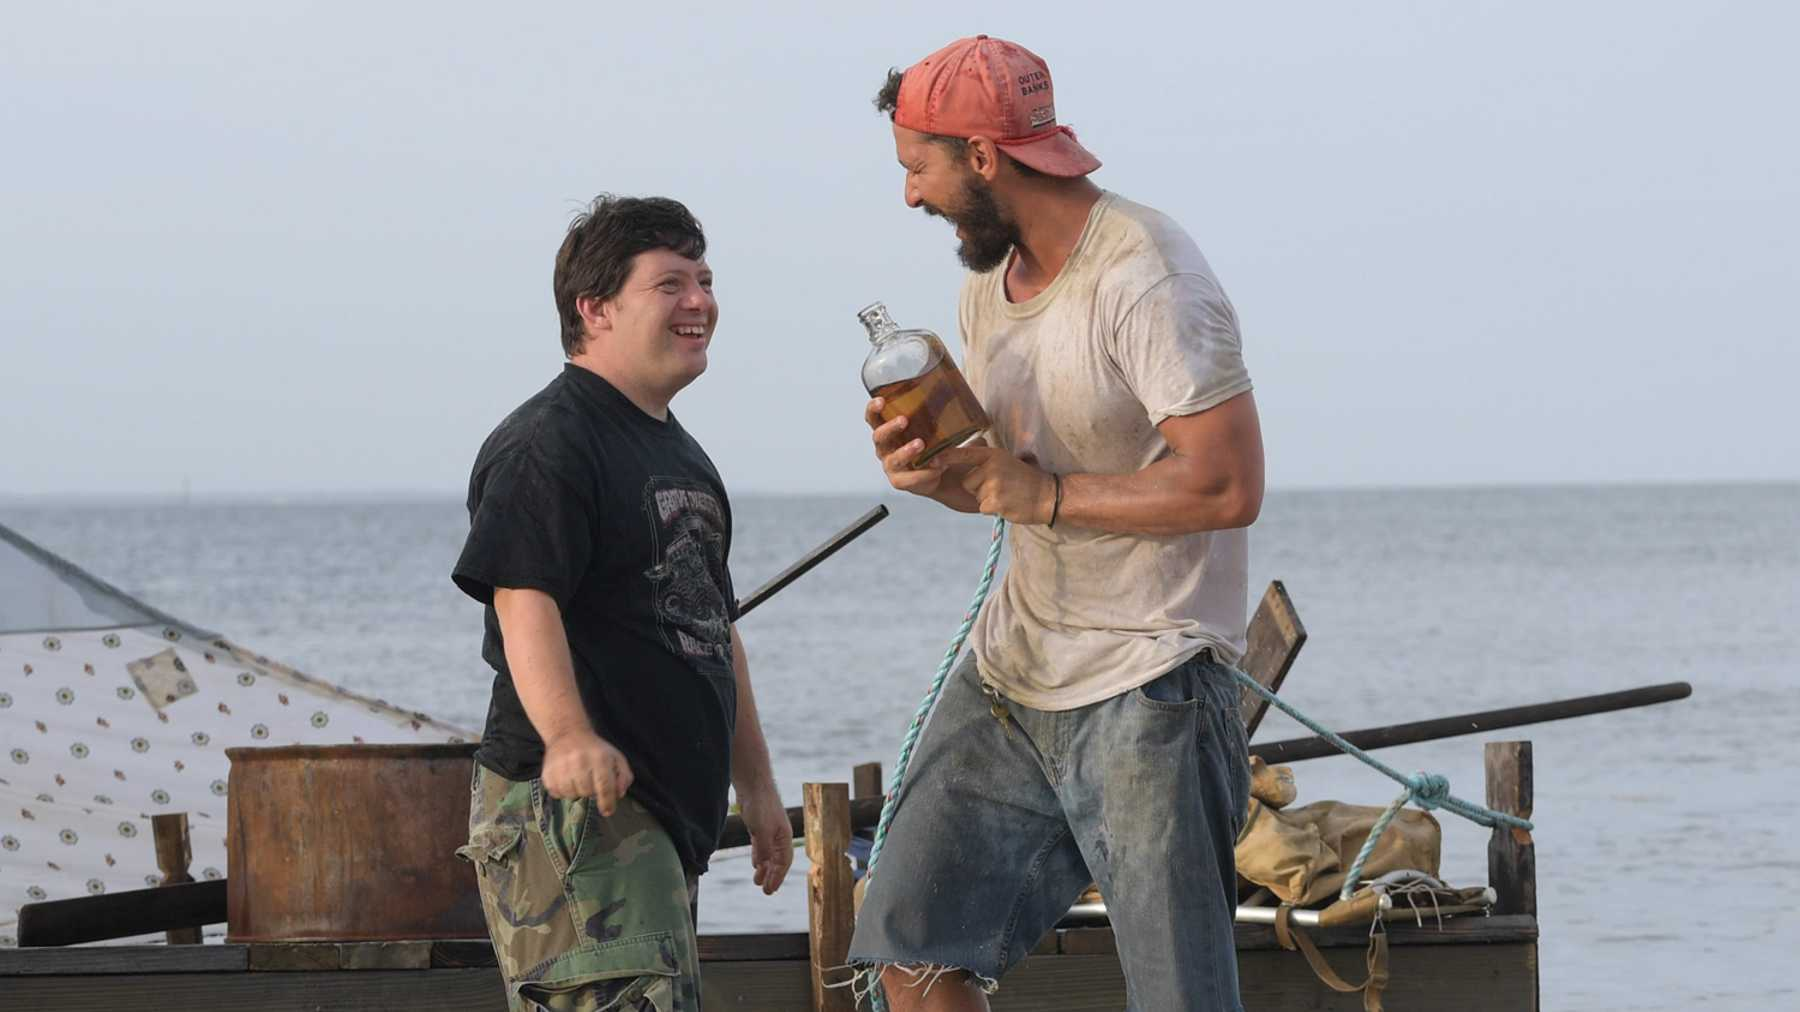 What's on in London: PEANUT BUTTER FALCON at Screen25 Cinema (21 FEB).